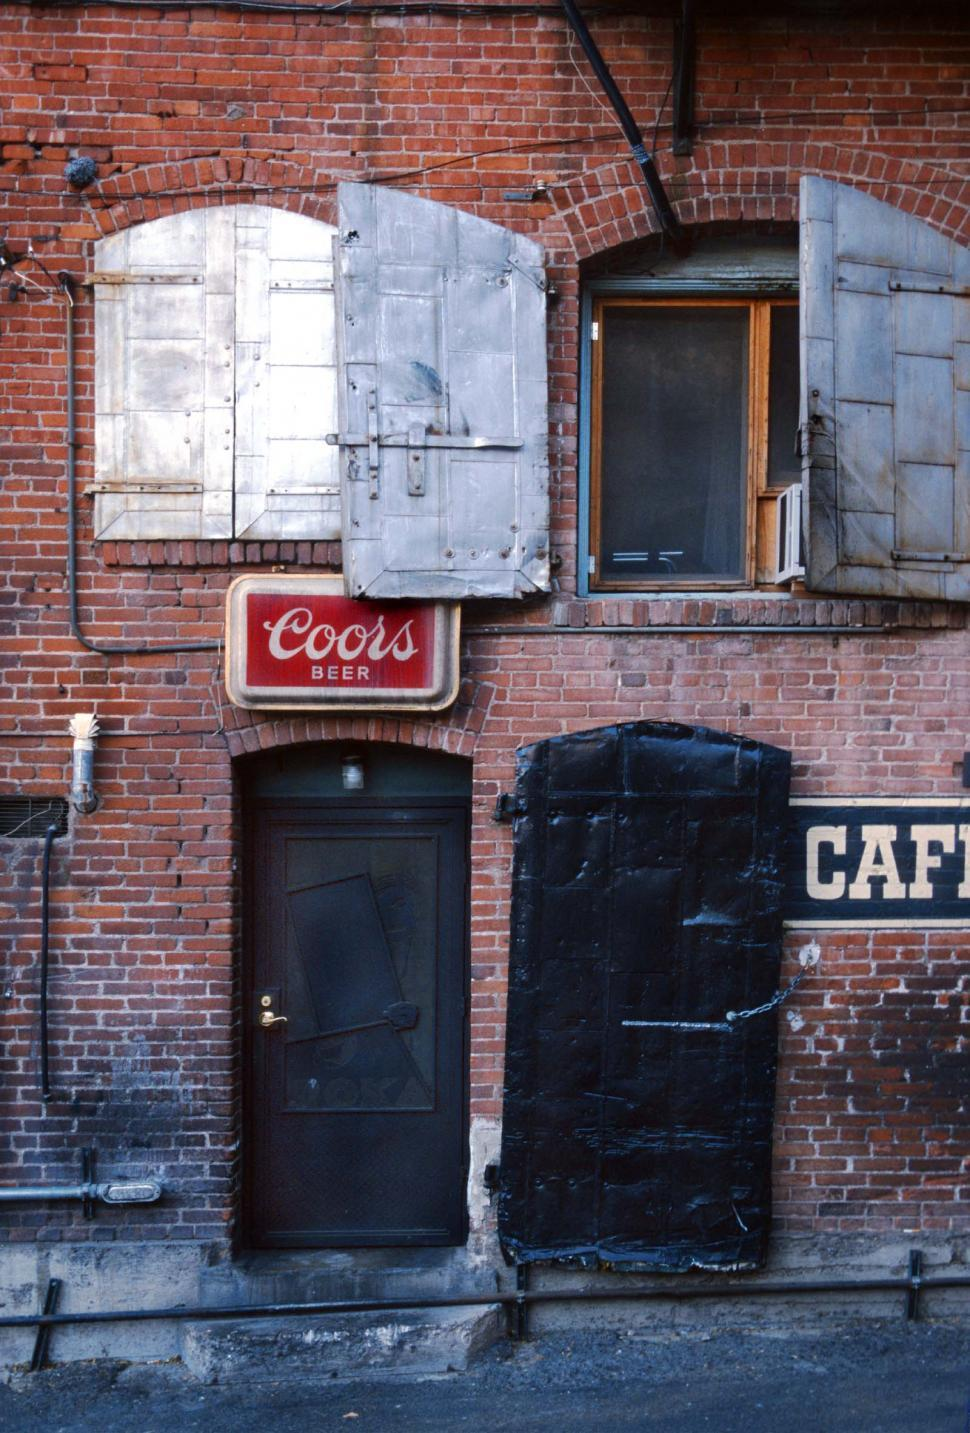 Download Free Stock HD Photo of Back alley behind bar - back entrance Online